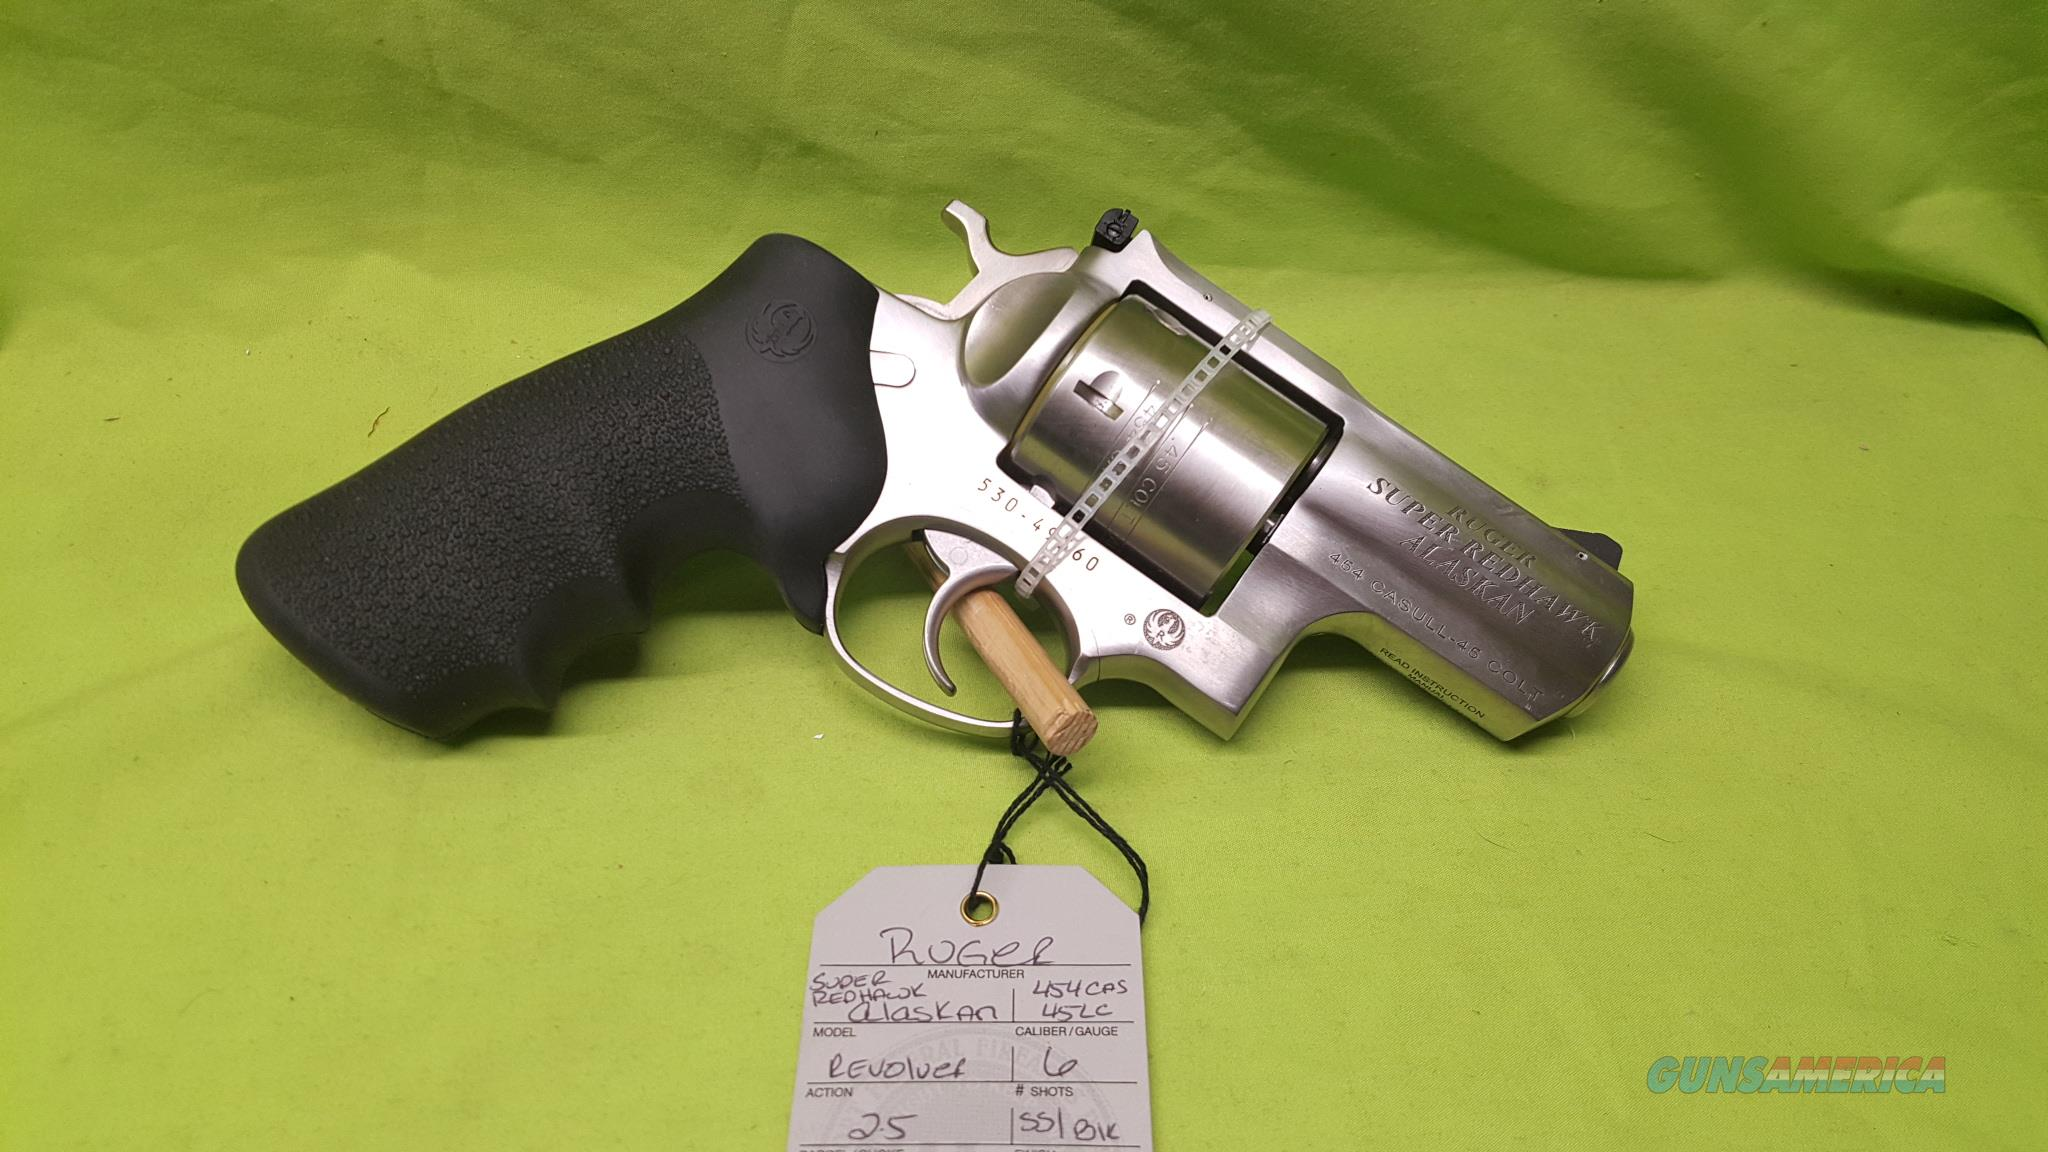 RUGER SUPER REDHAWK ALASKAN 454 CASUAL 45LC 2.5 SS  Guns > Pistols > Ruger Double Action Revolver > Redhawk Type